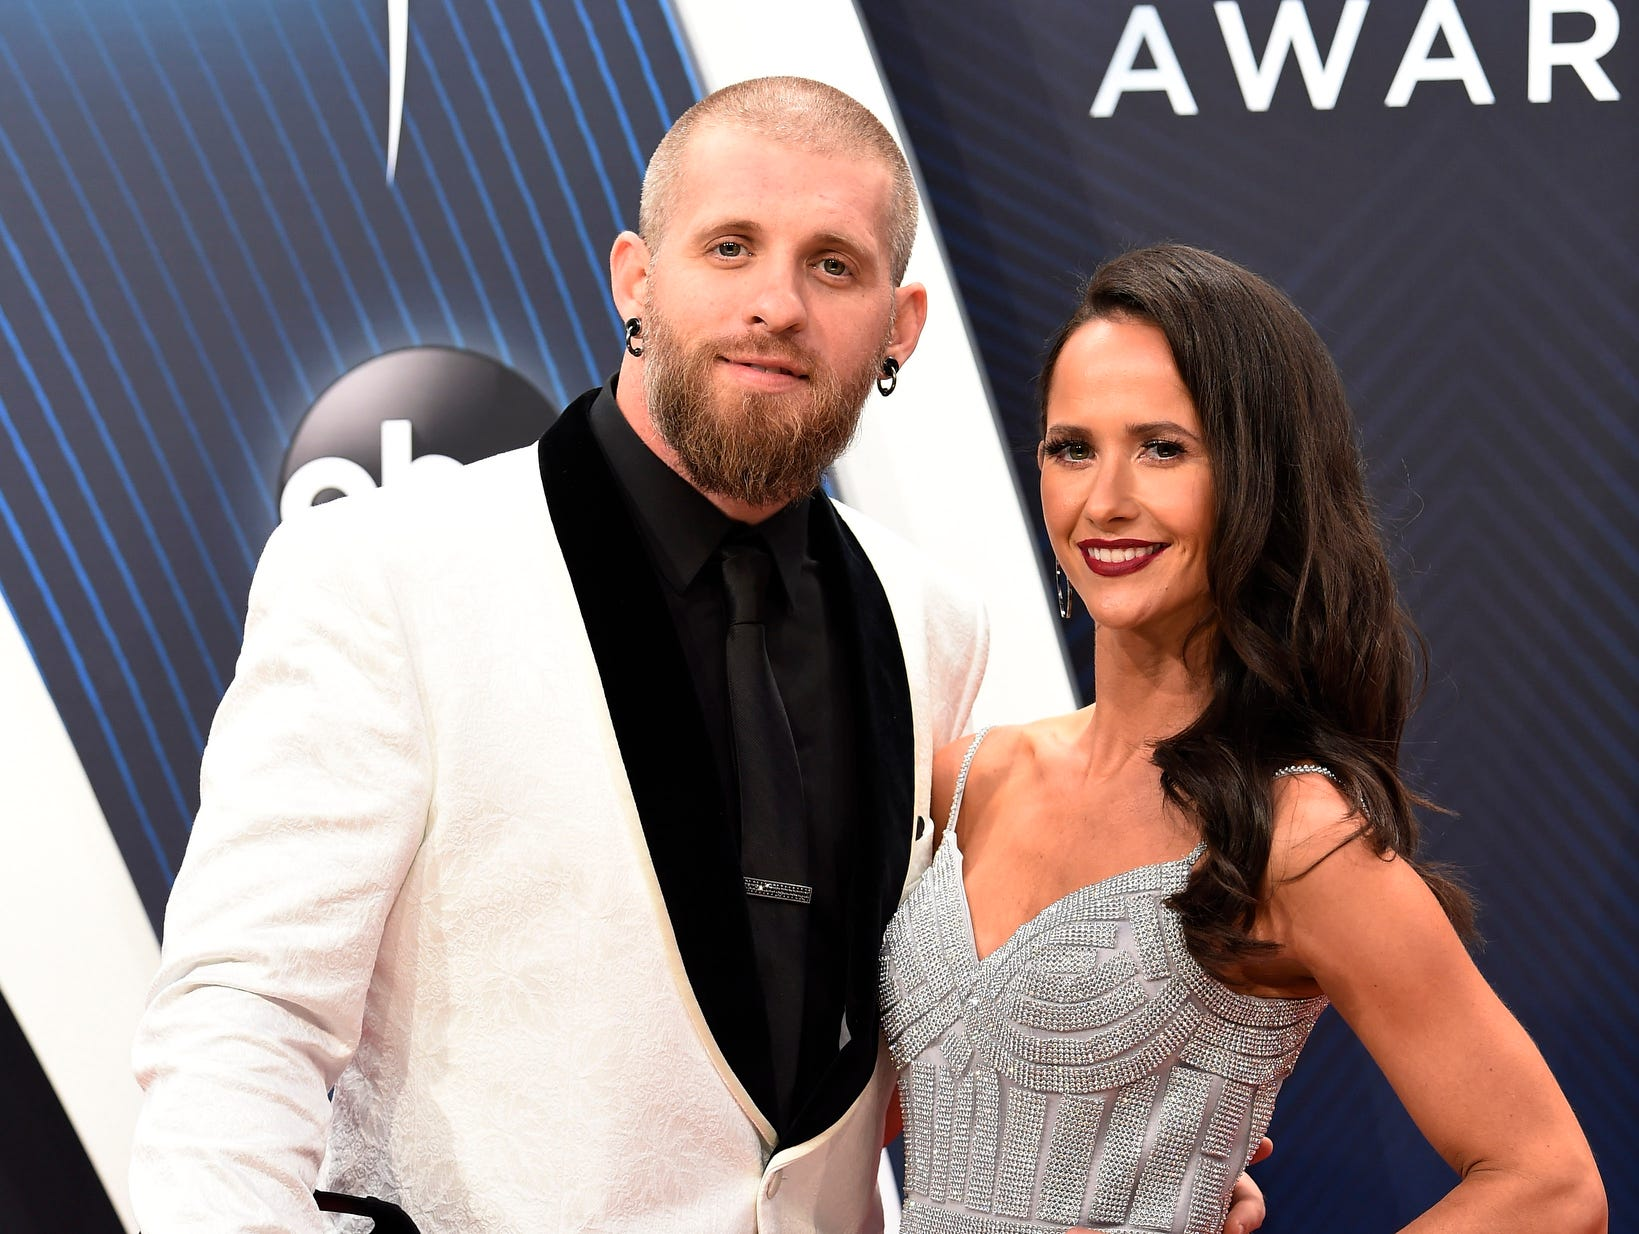 Brantley Gilbert and wife Amber Cochran